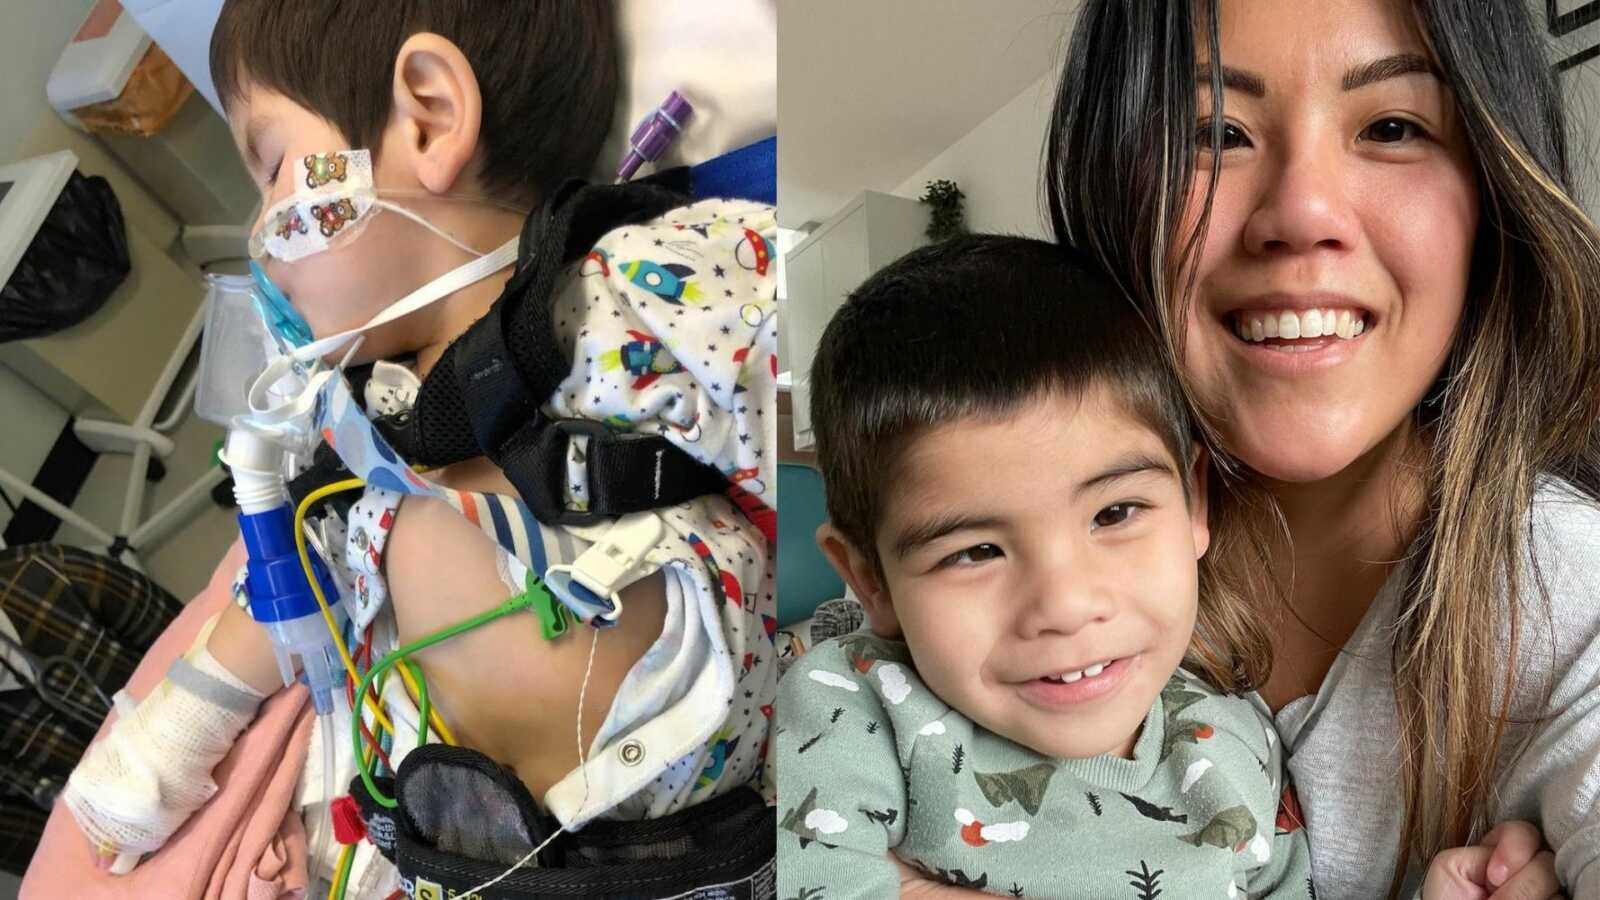 Boy lying in hospital bed with tubes and mom holding son with CDG